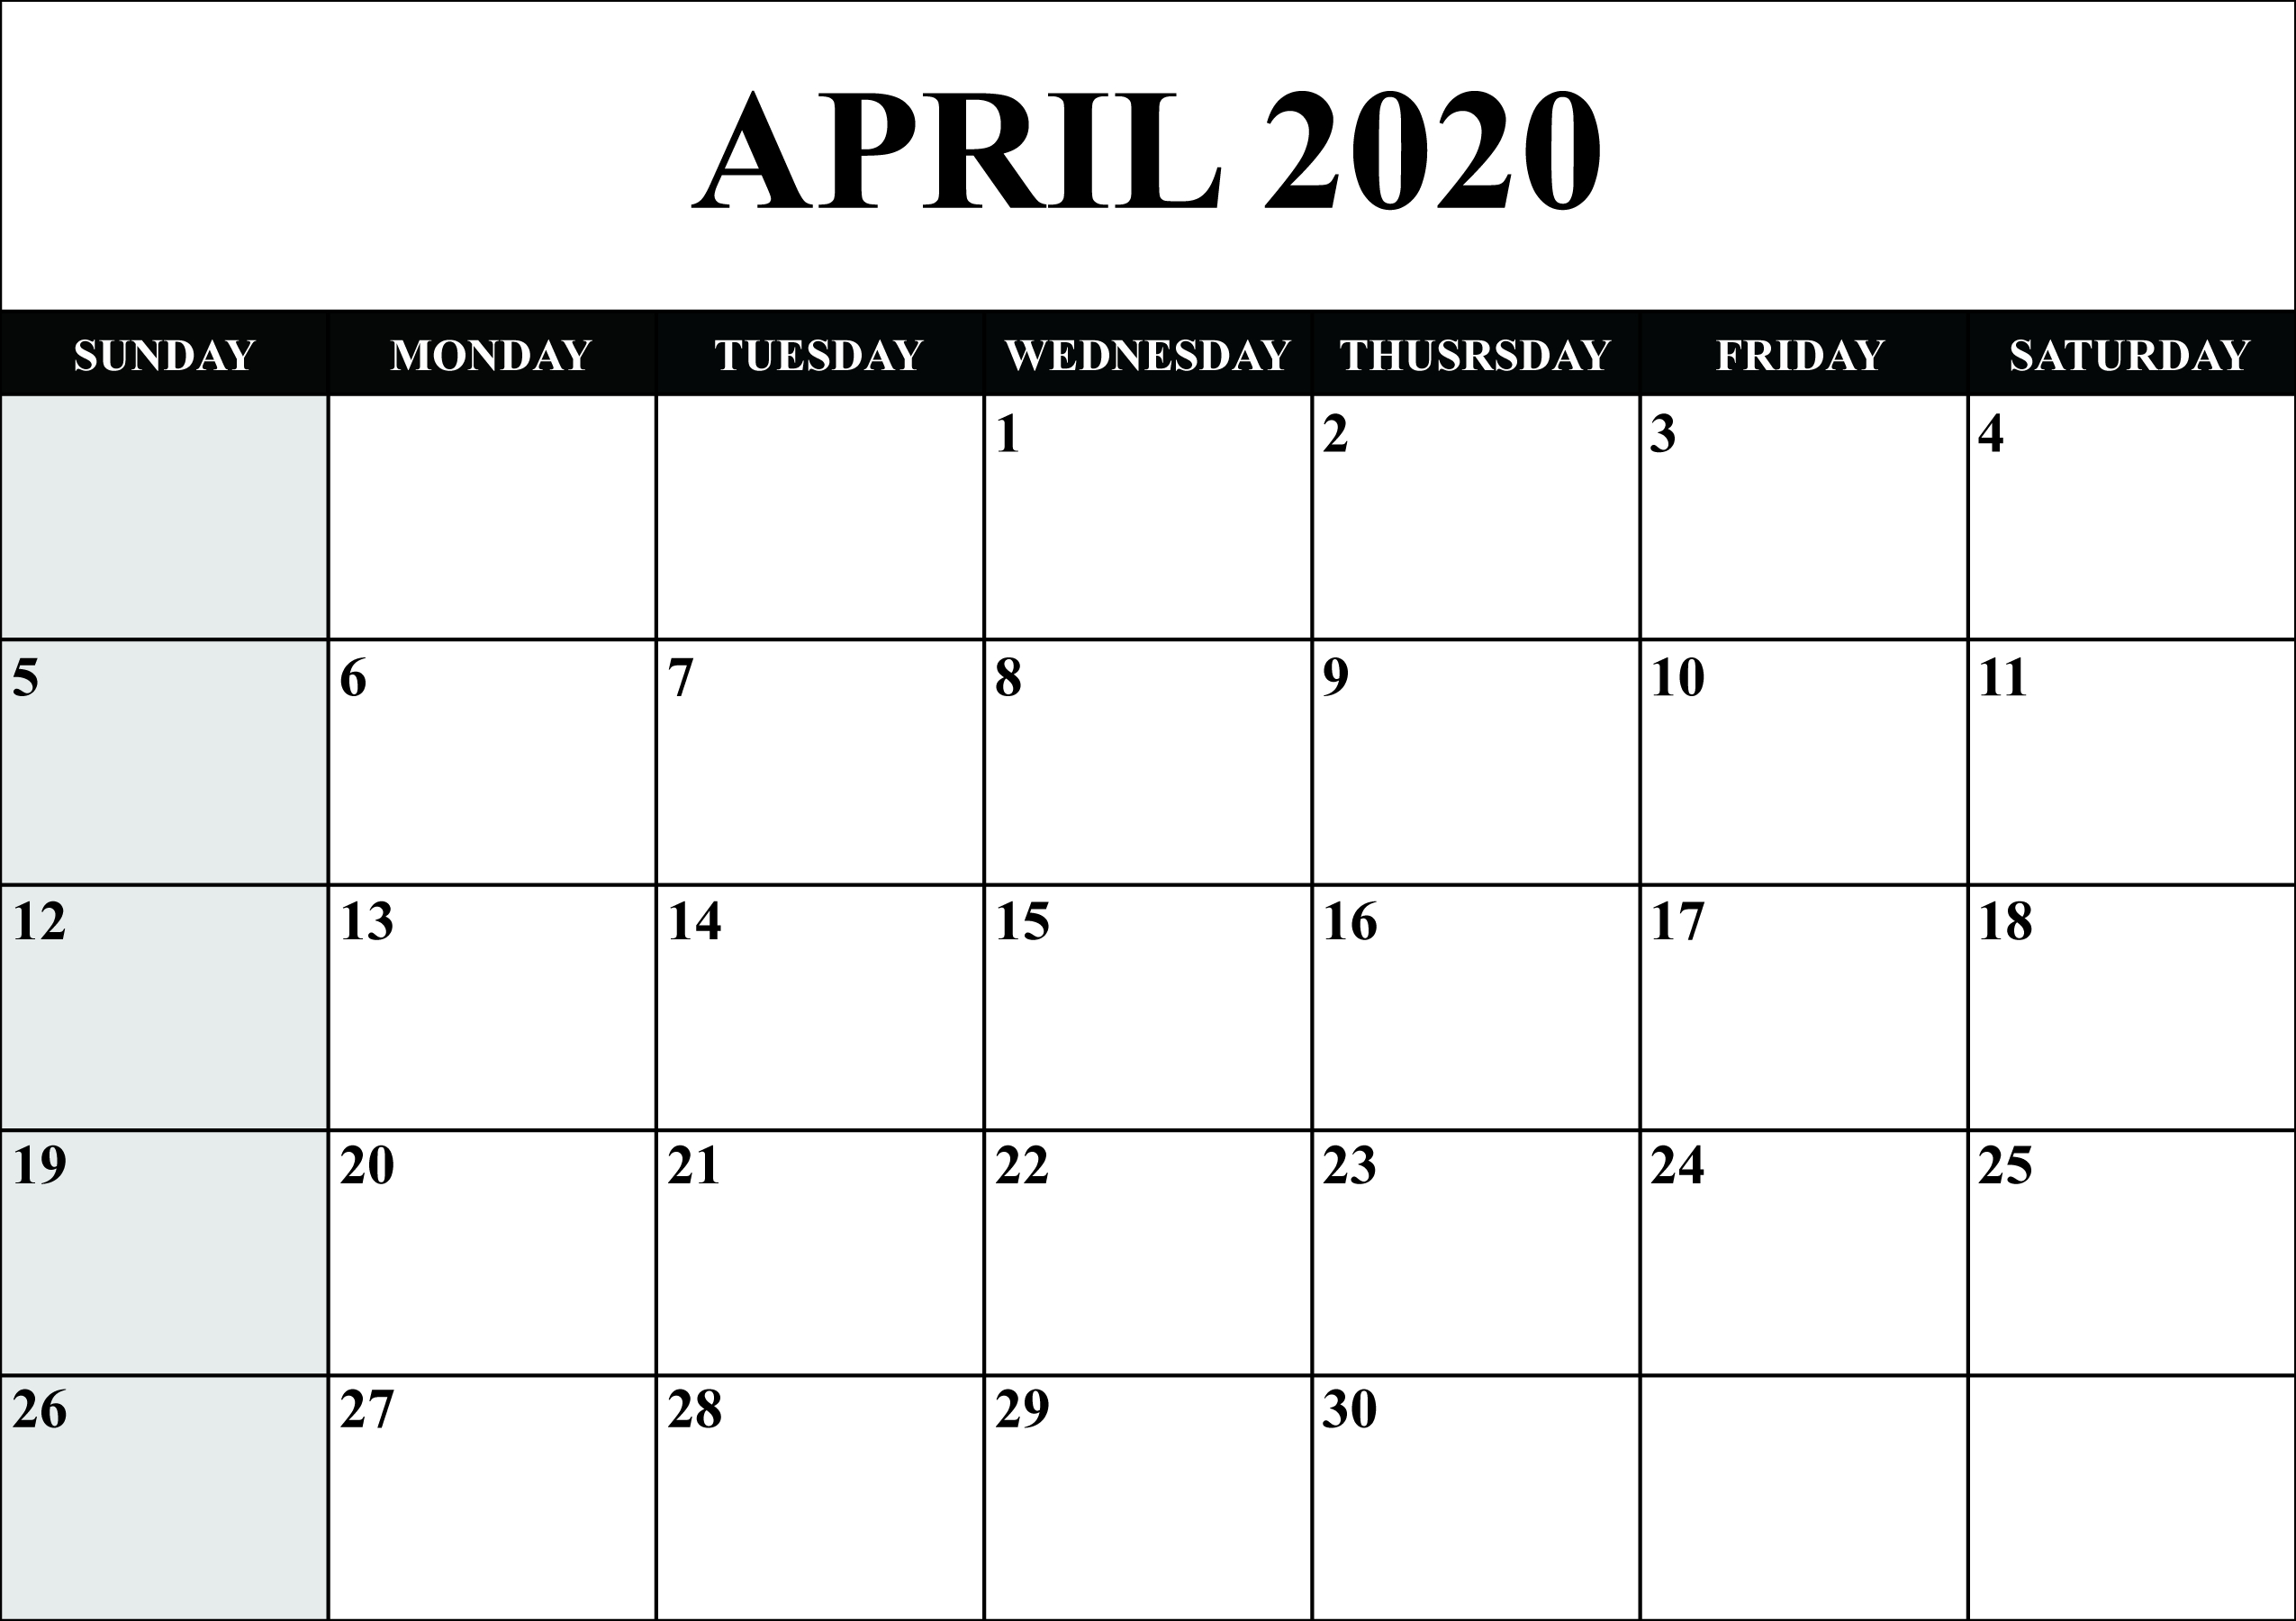 Free Blank April 2020 Calendar Printable In Pdf, Word, Excel